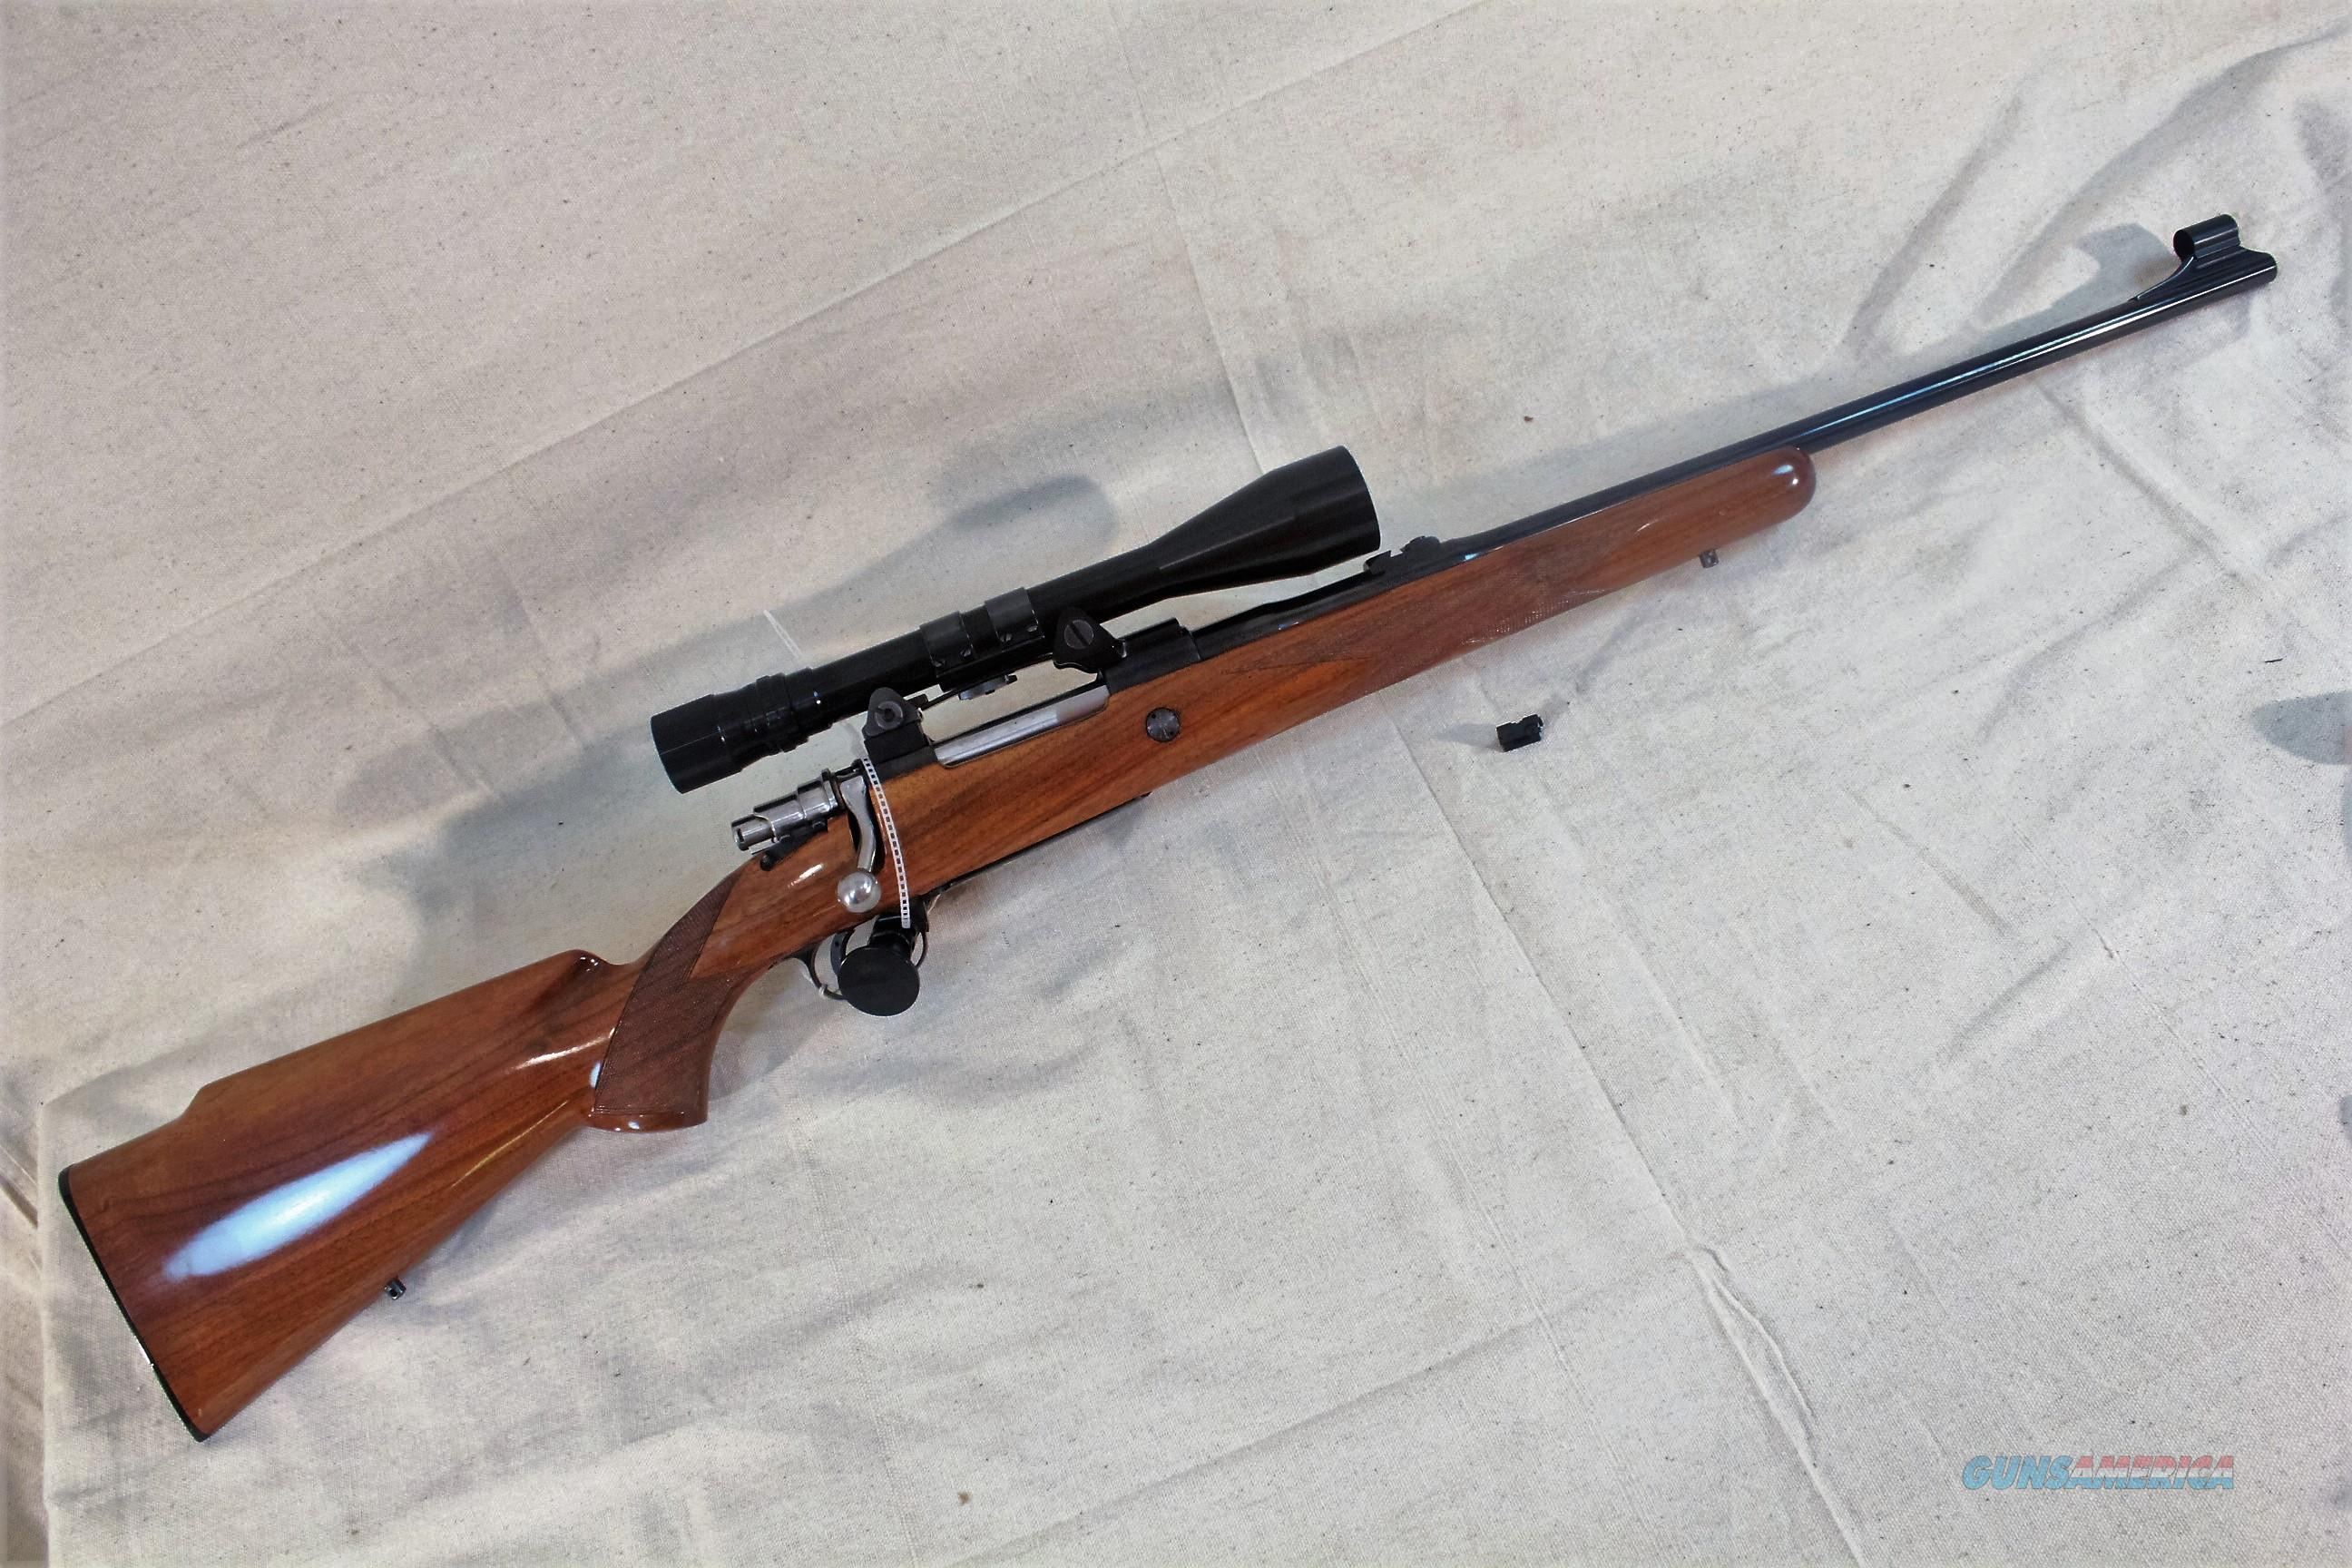 Browning Belgium Safari .30-06 rifle with 2.5x8 Bausch & Lomb scope with tapered crosshairs  Guns > Rifles > Browning Rifles > Bolt Action > Hunting > Blue